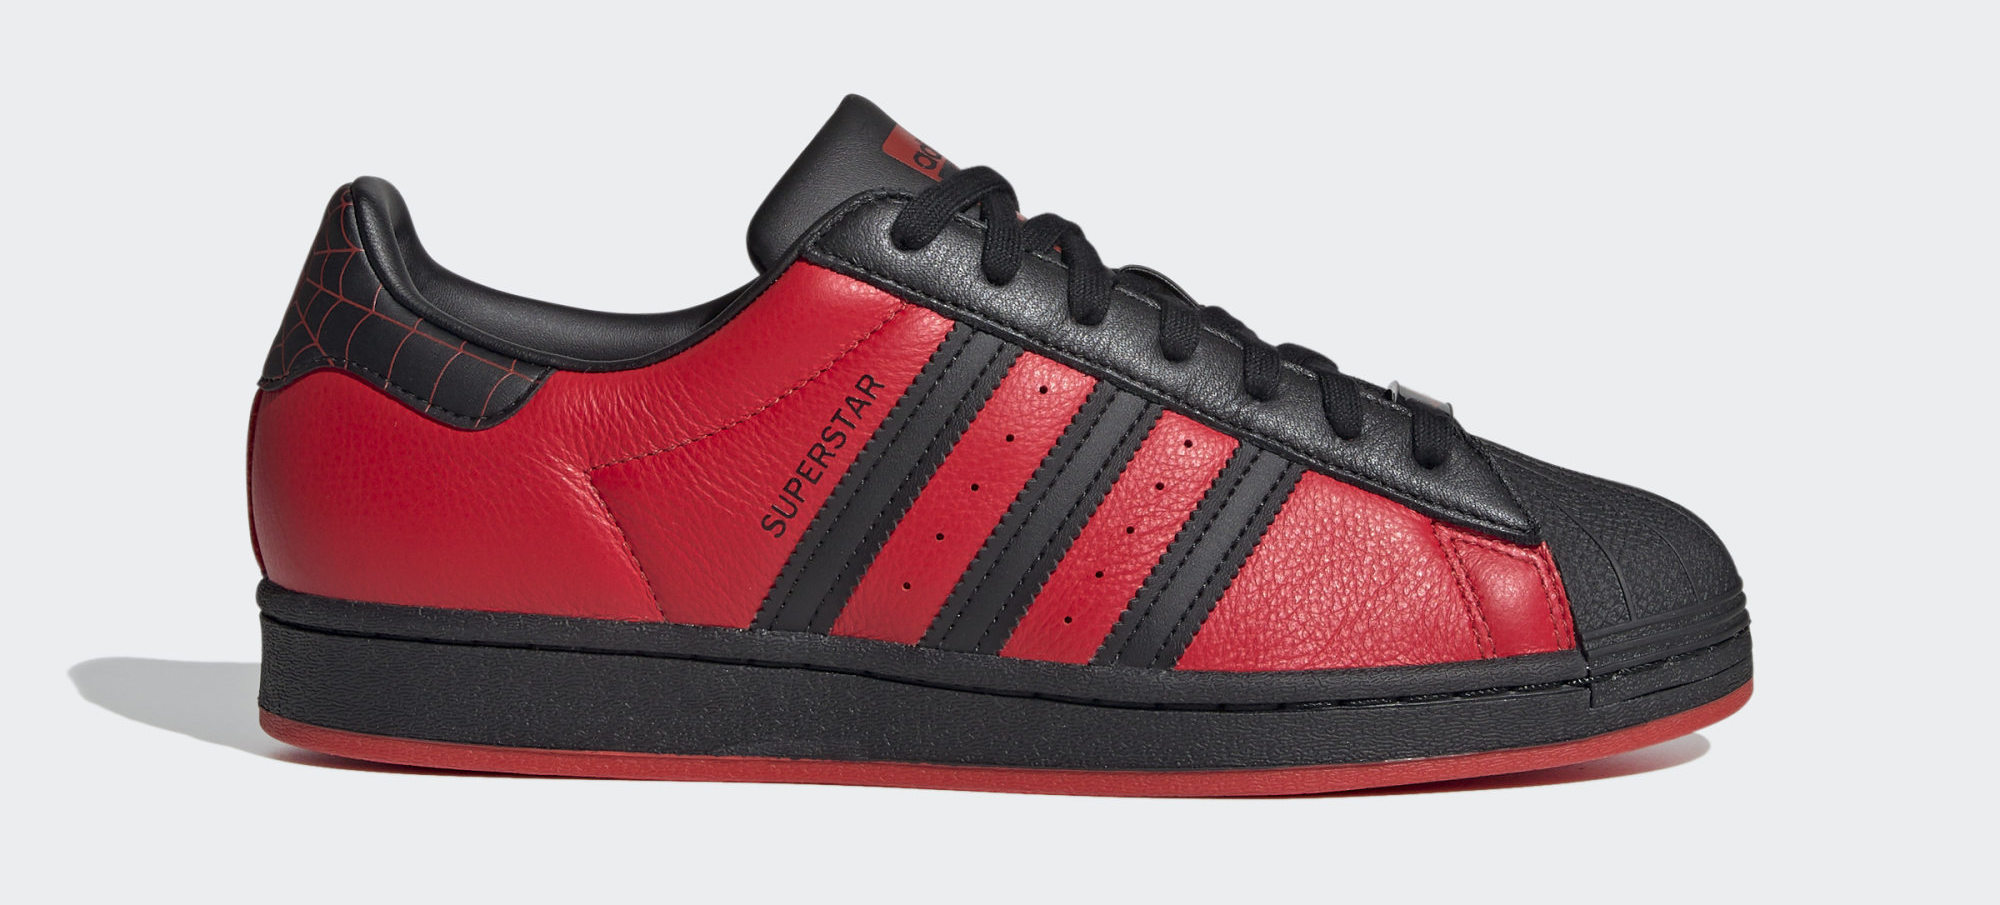 Miles Morales adidas shoes